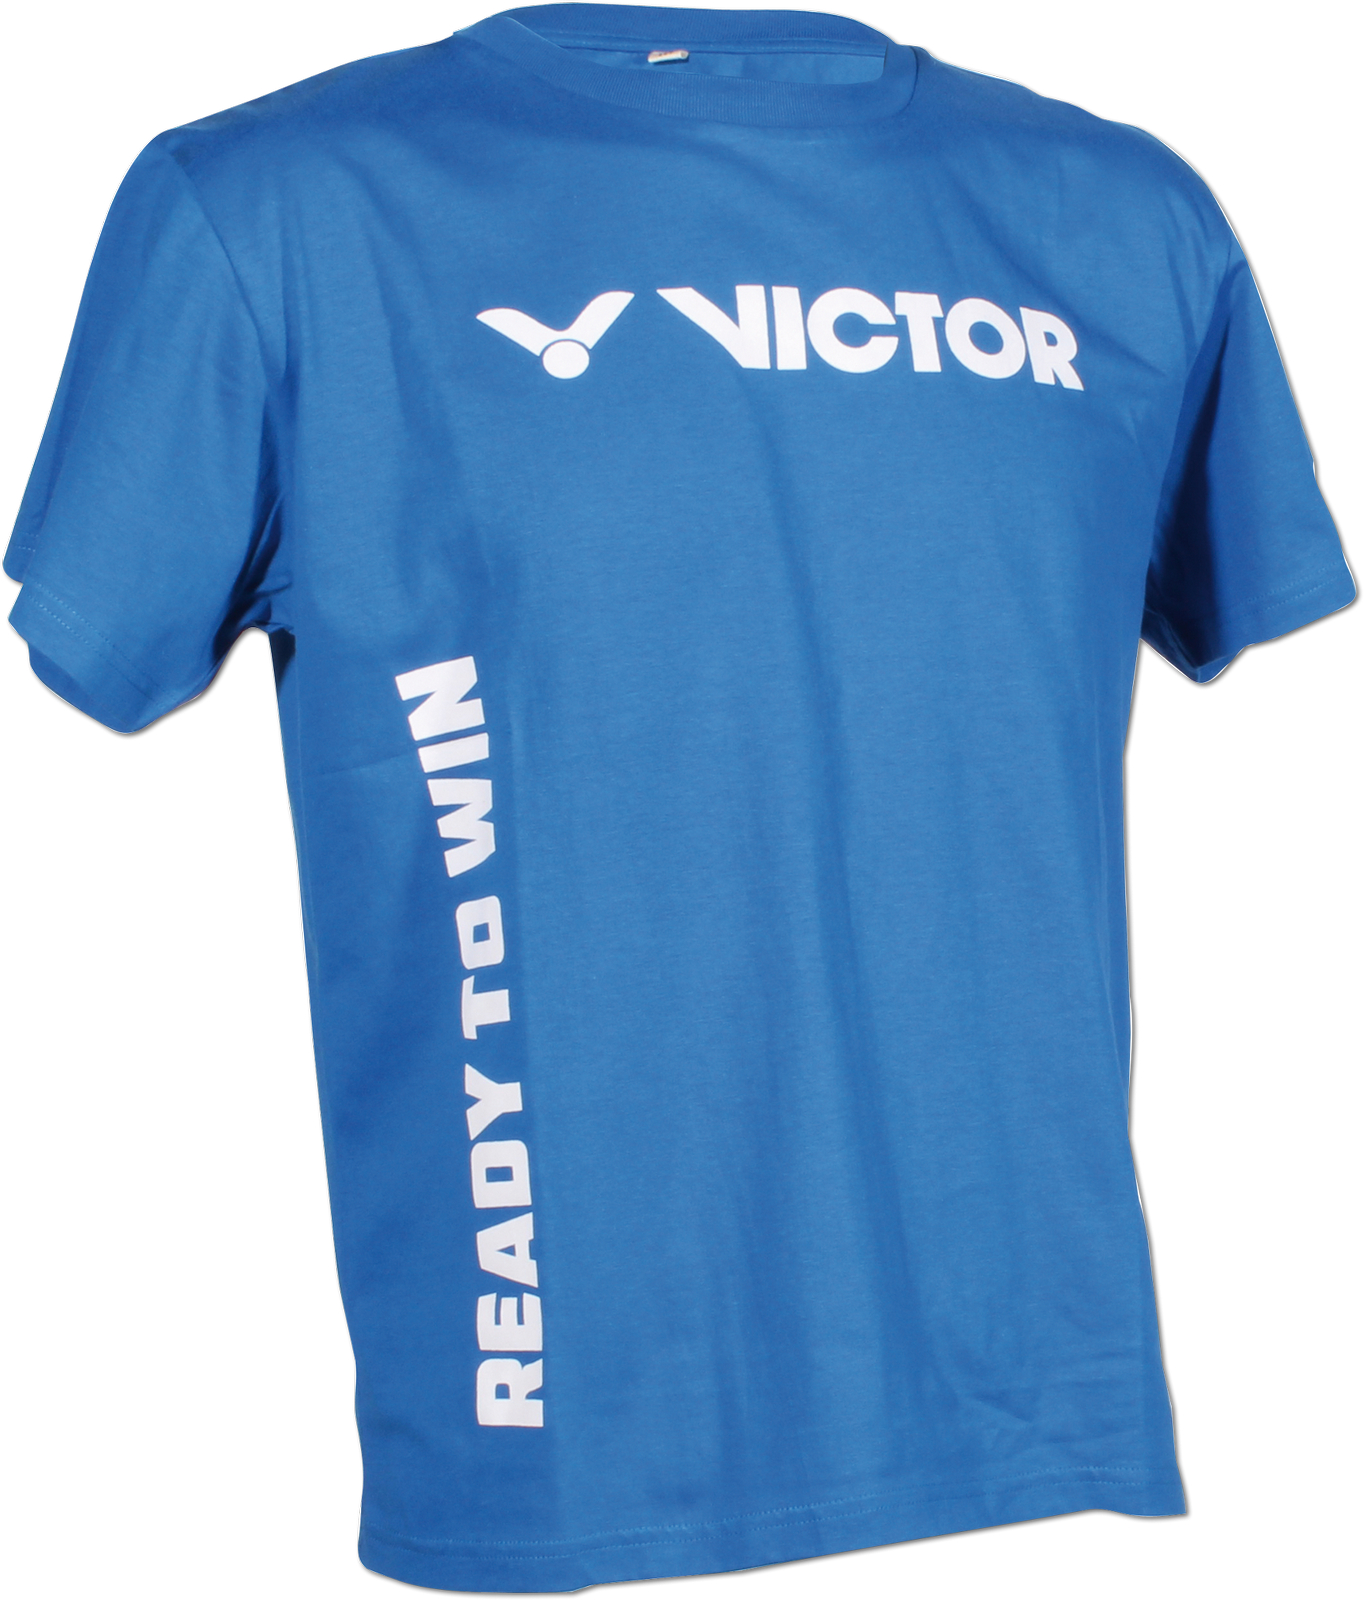 Victor Promoshirt organic - Ready to win